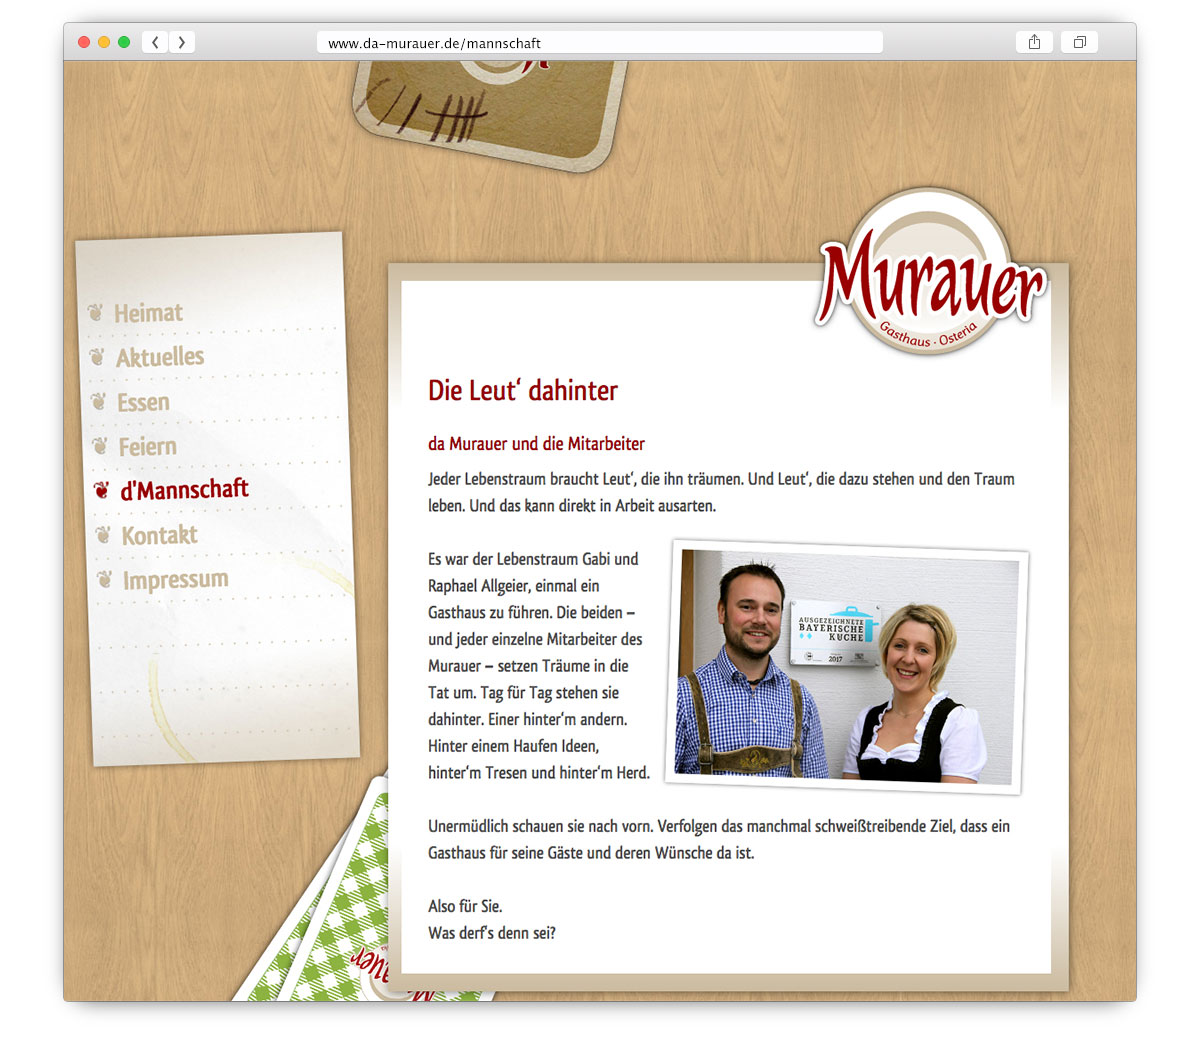 Da Murauer Website